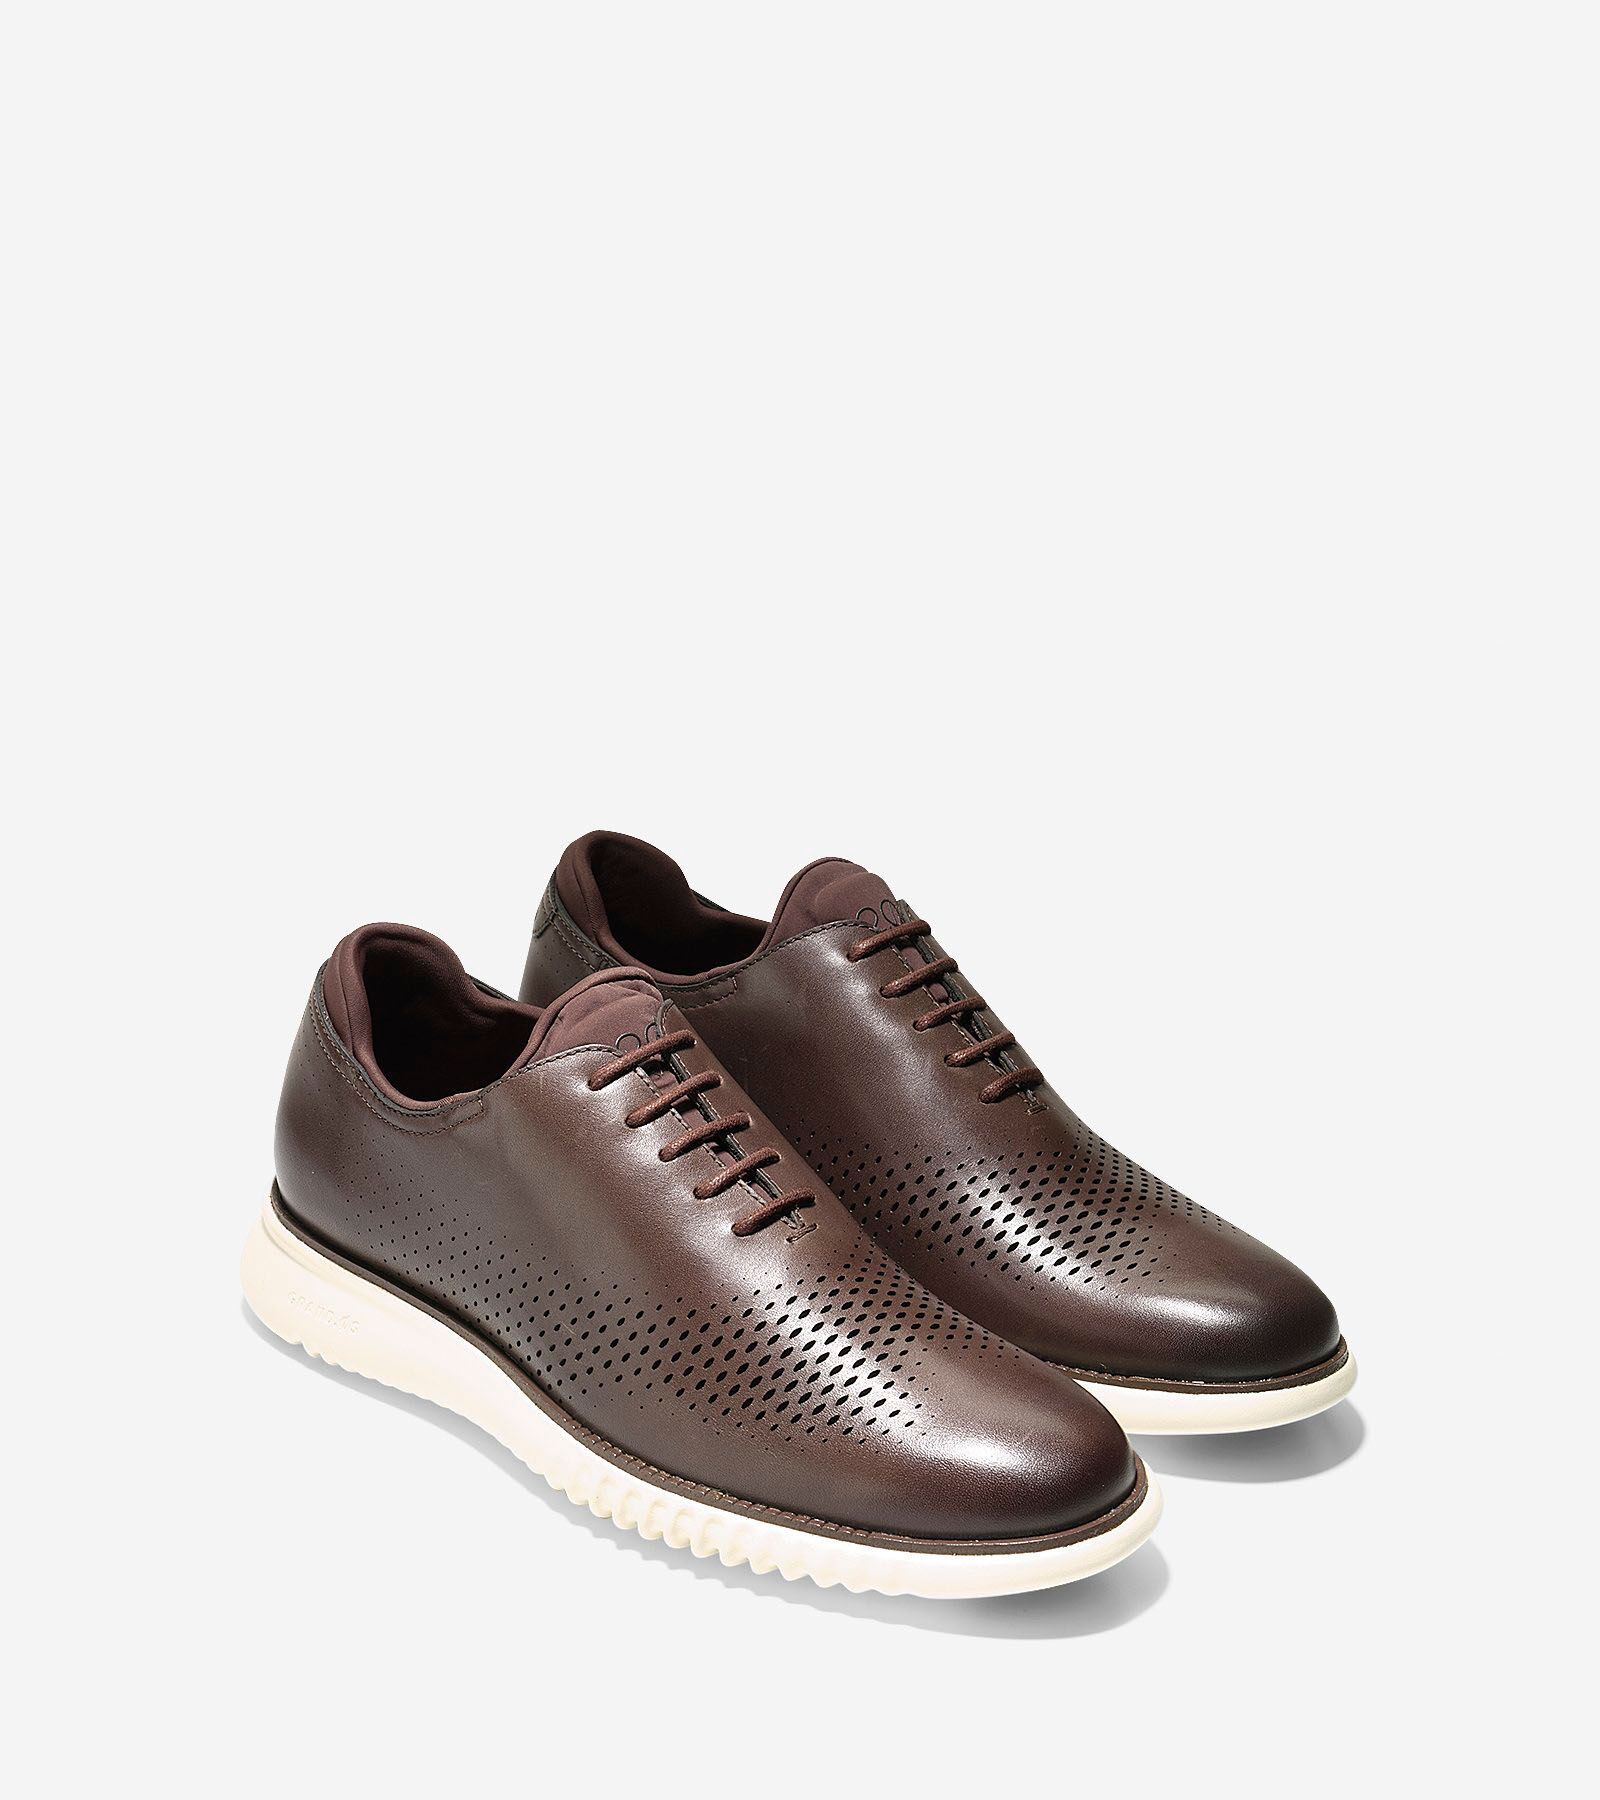 ZERØGRAND Laser Wingtip Oxford · Men's 2.ZERØGRAND Laser Wingtip Oxford ...